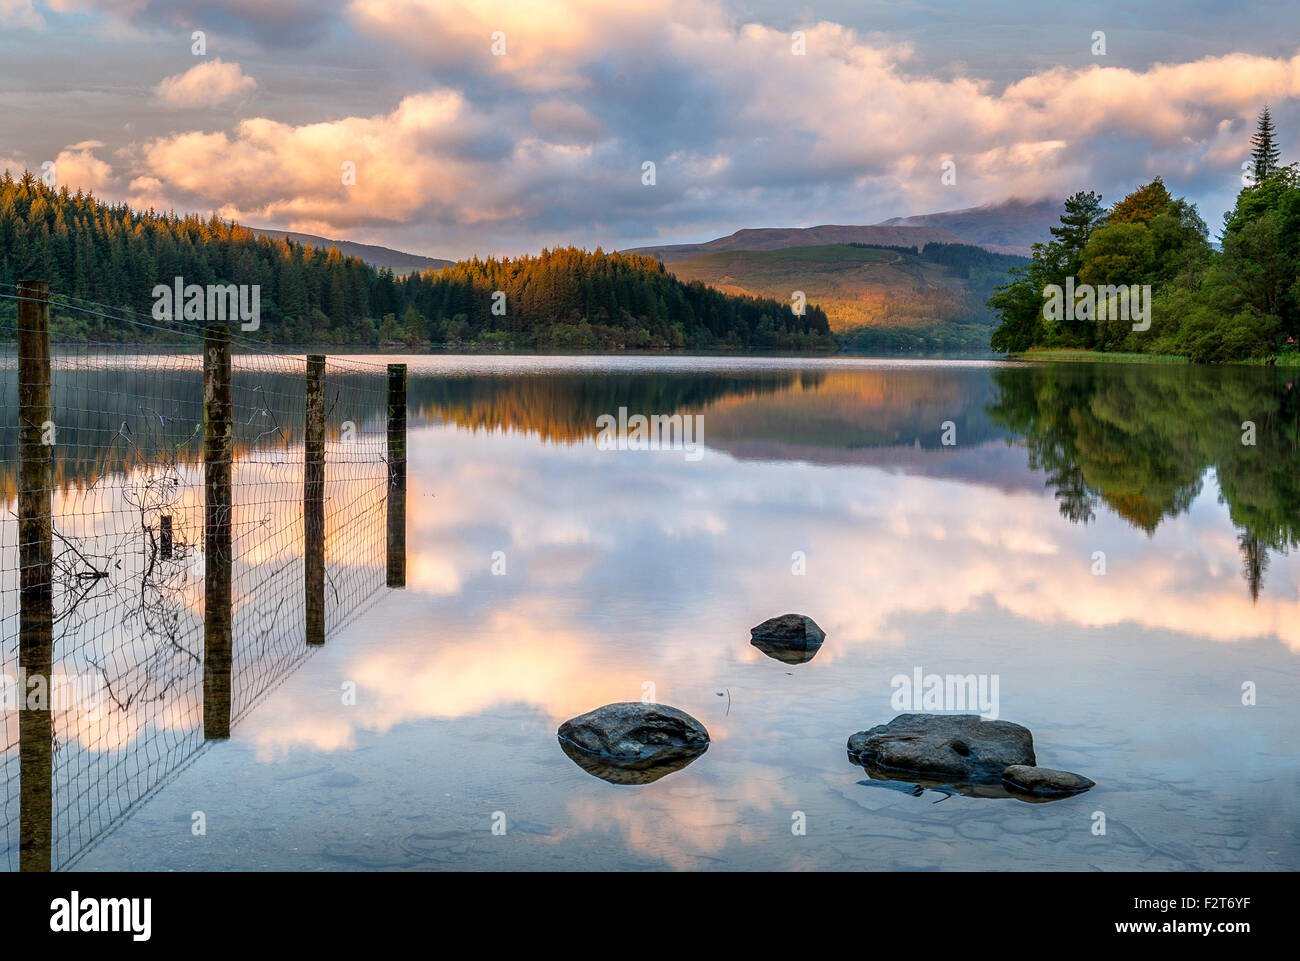 Sunrise on Loch Ard i the Scottish Highlands with Ben Lomond in the distance - Stock Image